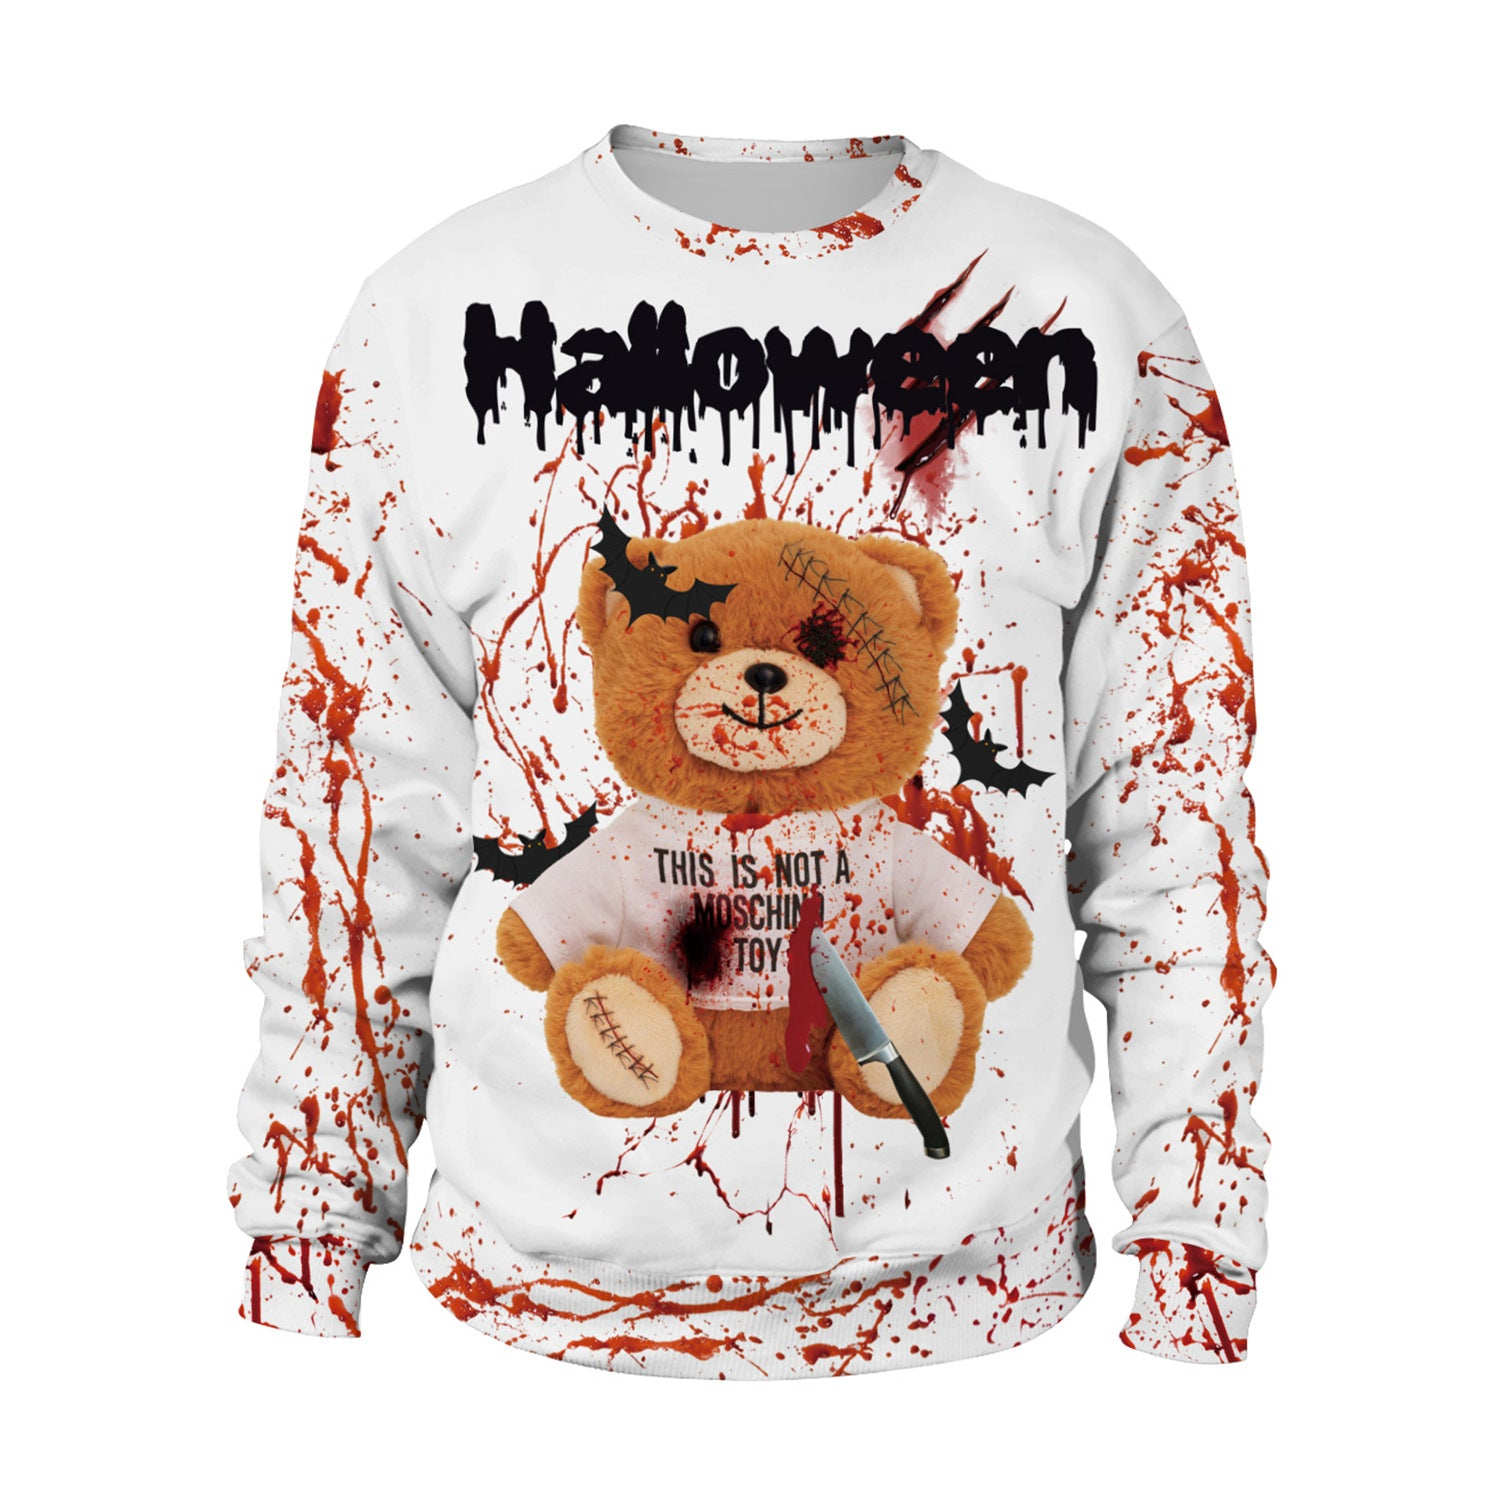 Horror 3D Blood Splashing Printed Sweatshirt Halloween Party Costume